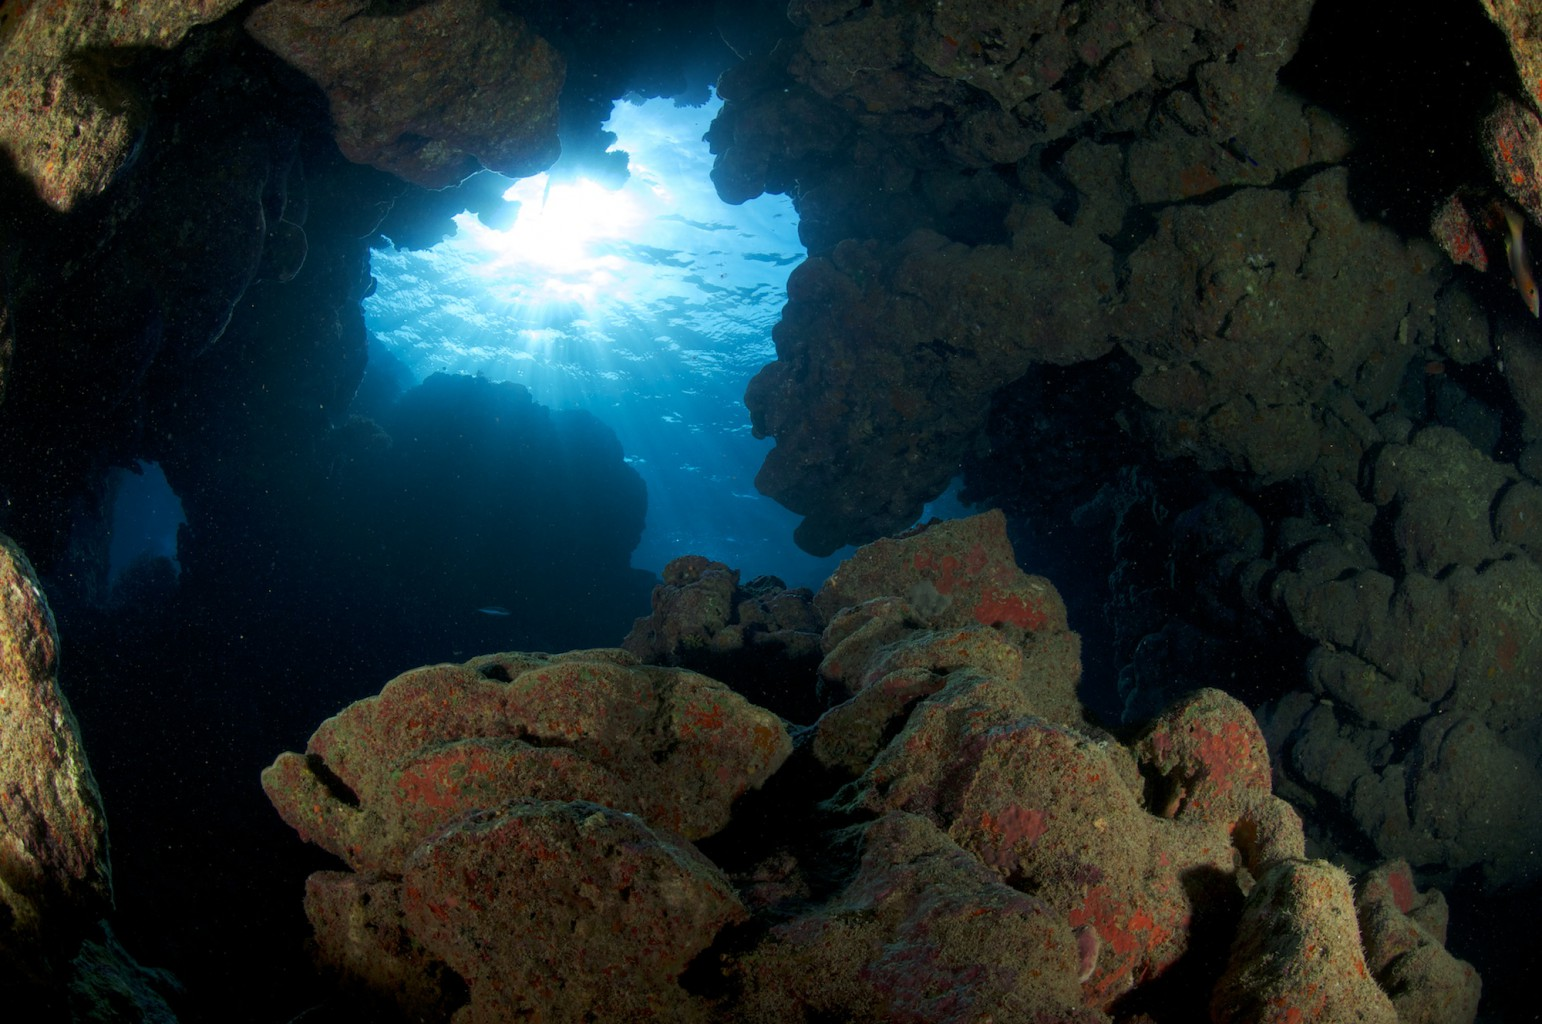 Red Sea Cave opening, southern Red Sea, Egypt